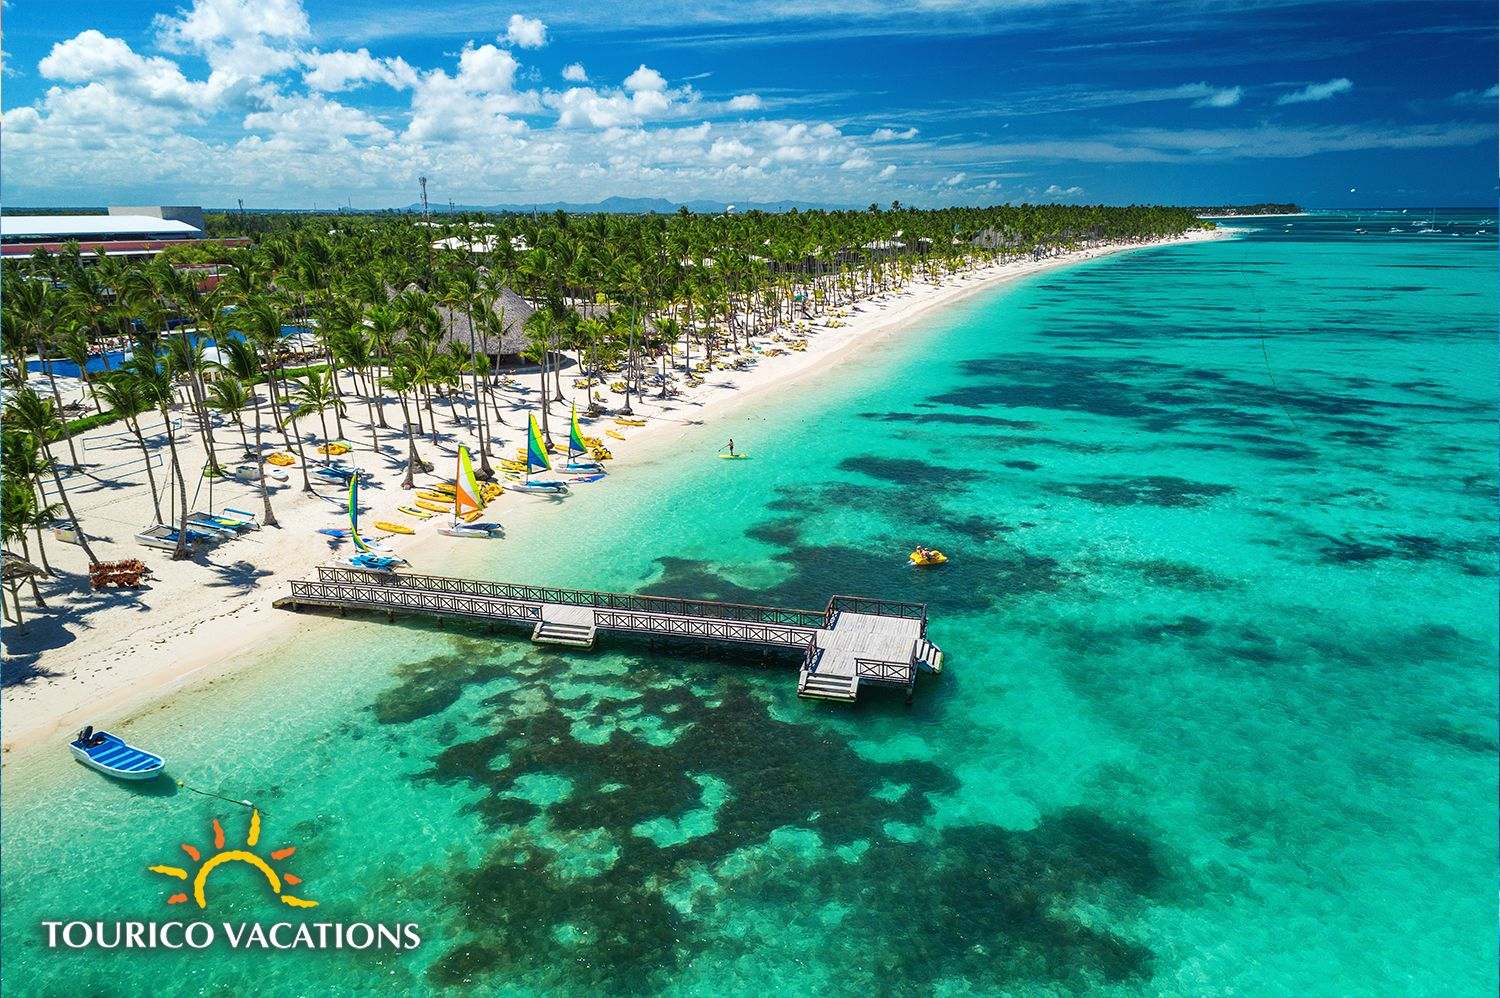 Tourico Vacations Reviews Family-Friendly All Inclusive Resorts Opening in 2019